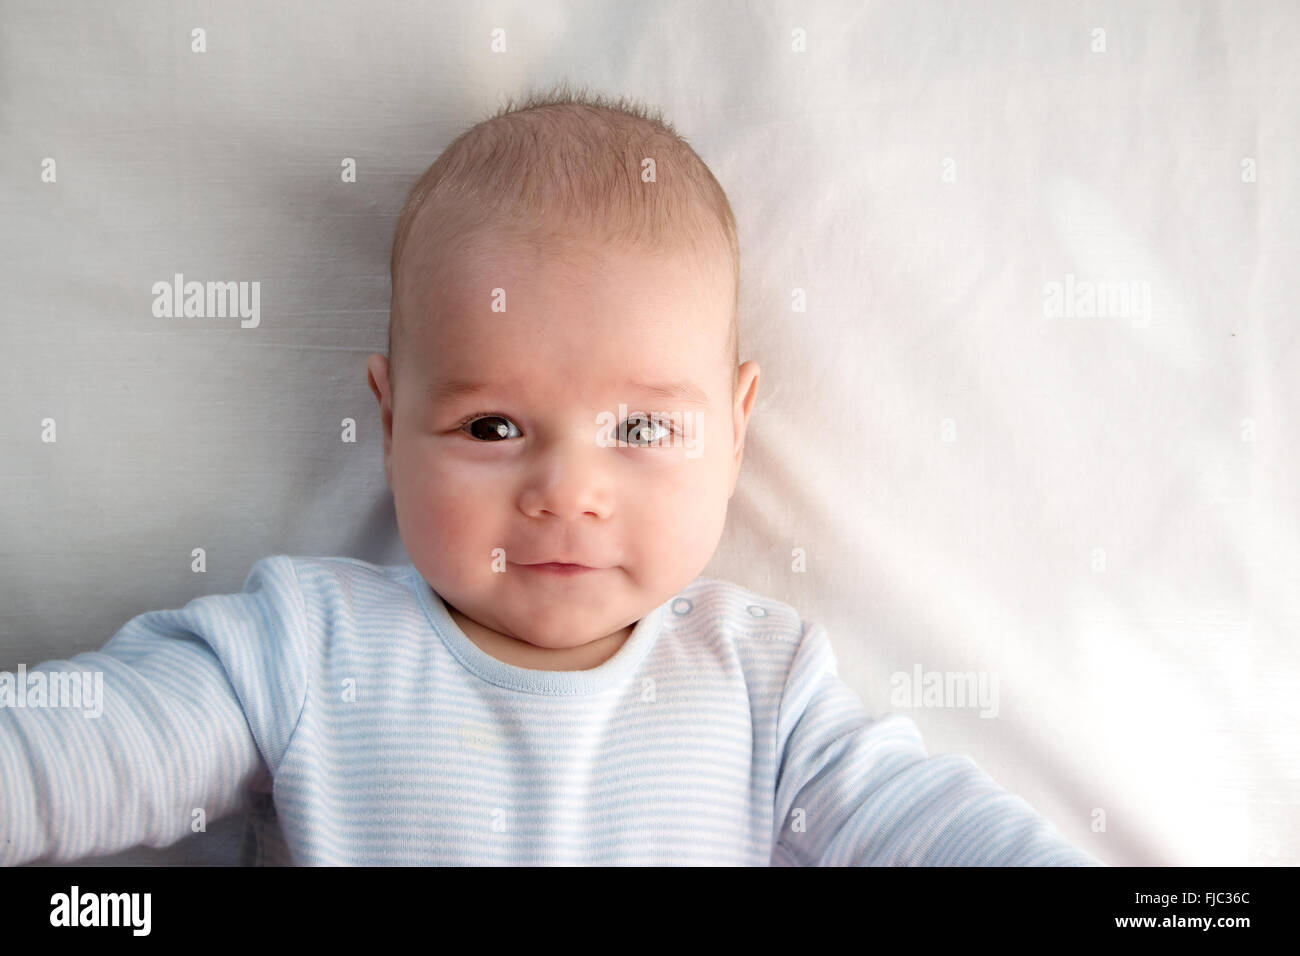 Three Month Old Baby Wrapped In Blue Blanket Stock Photo 97381604